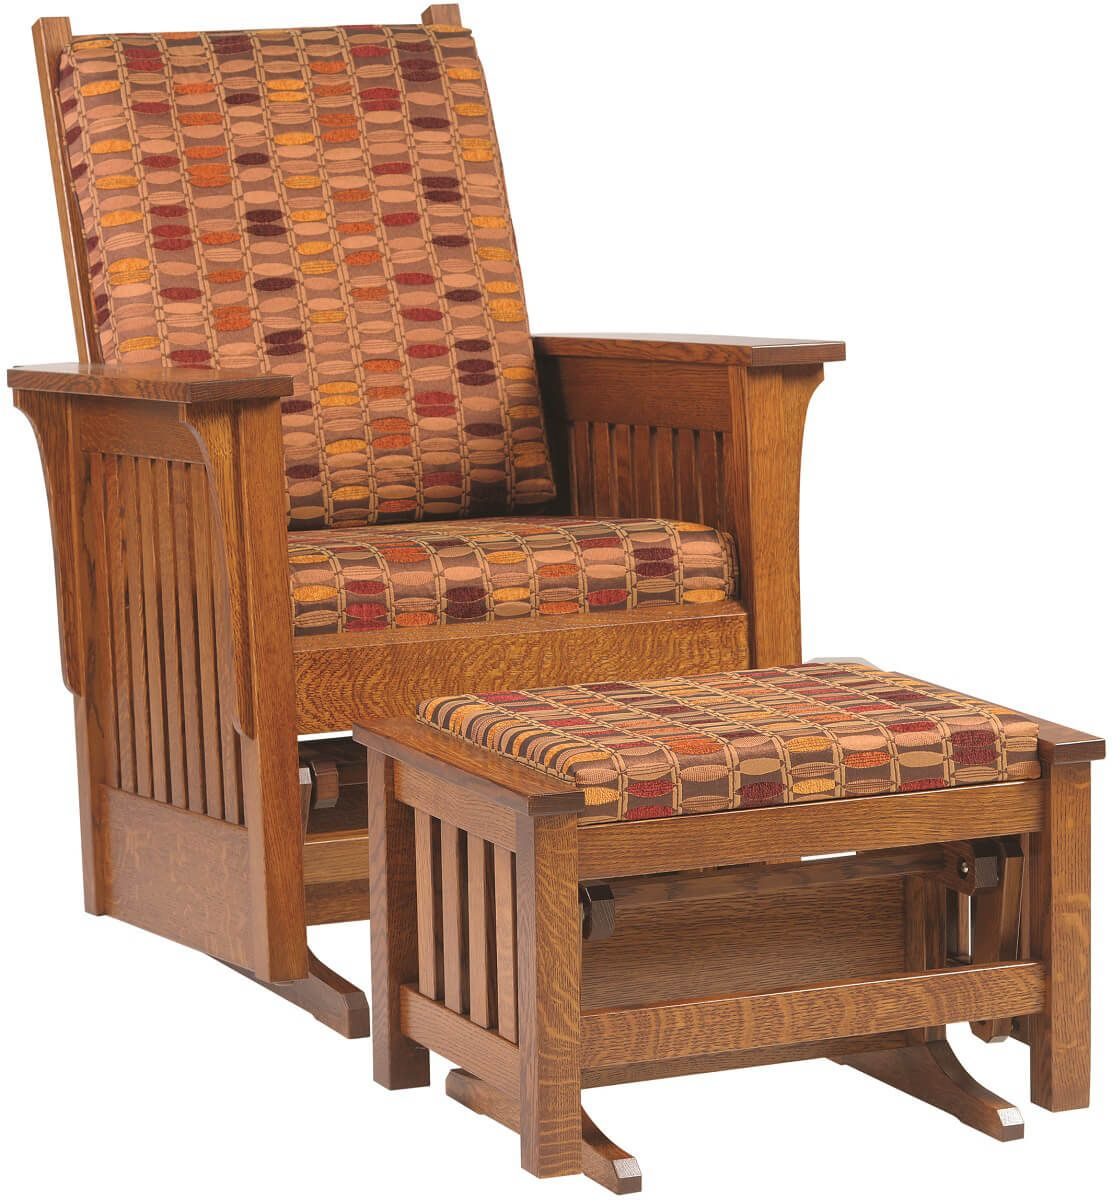 childcare glider rocking chair ottoman walnut child table and chairs sandy creek mission style countryside amish furniture